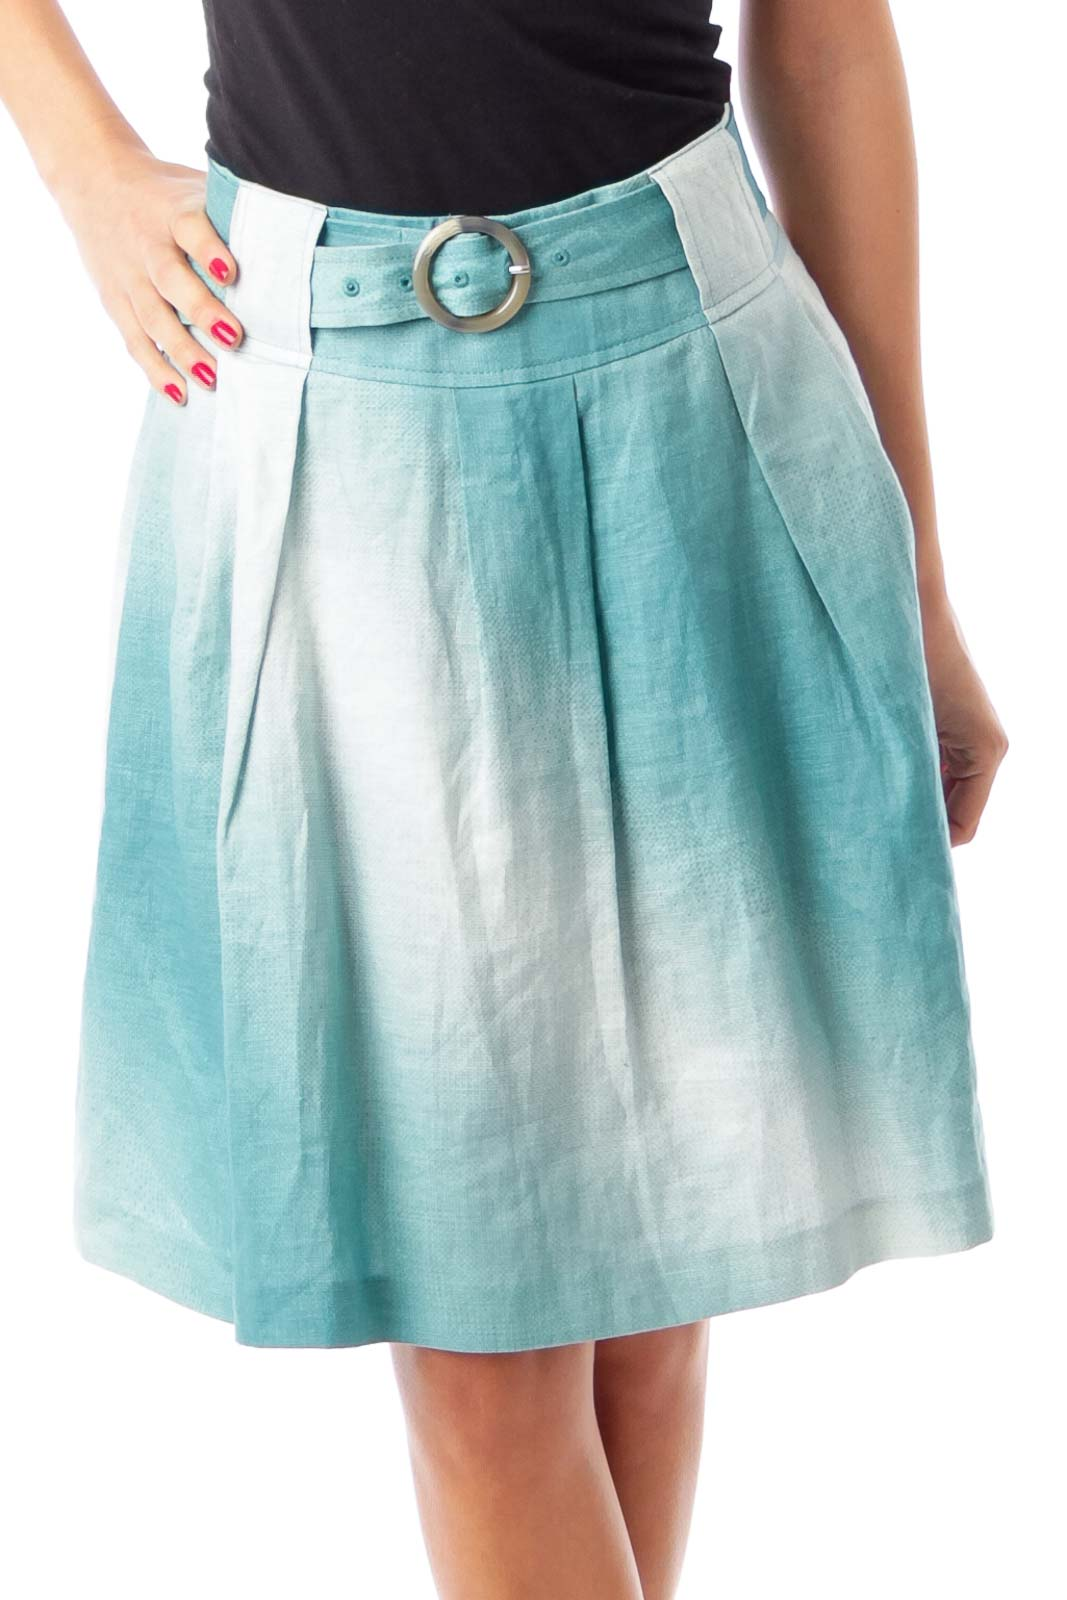 Turquoise & White Belted A-Line Skirt Front